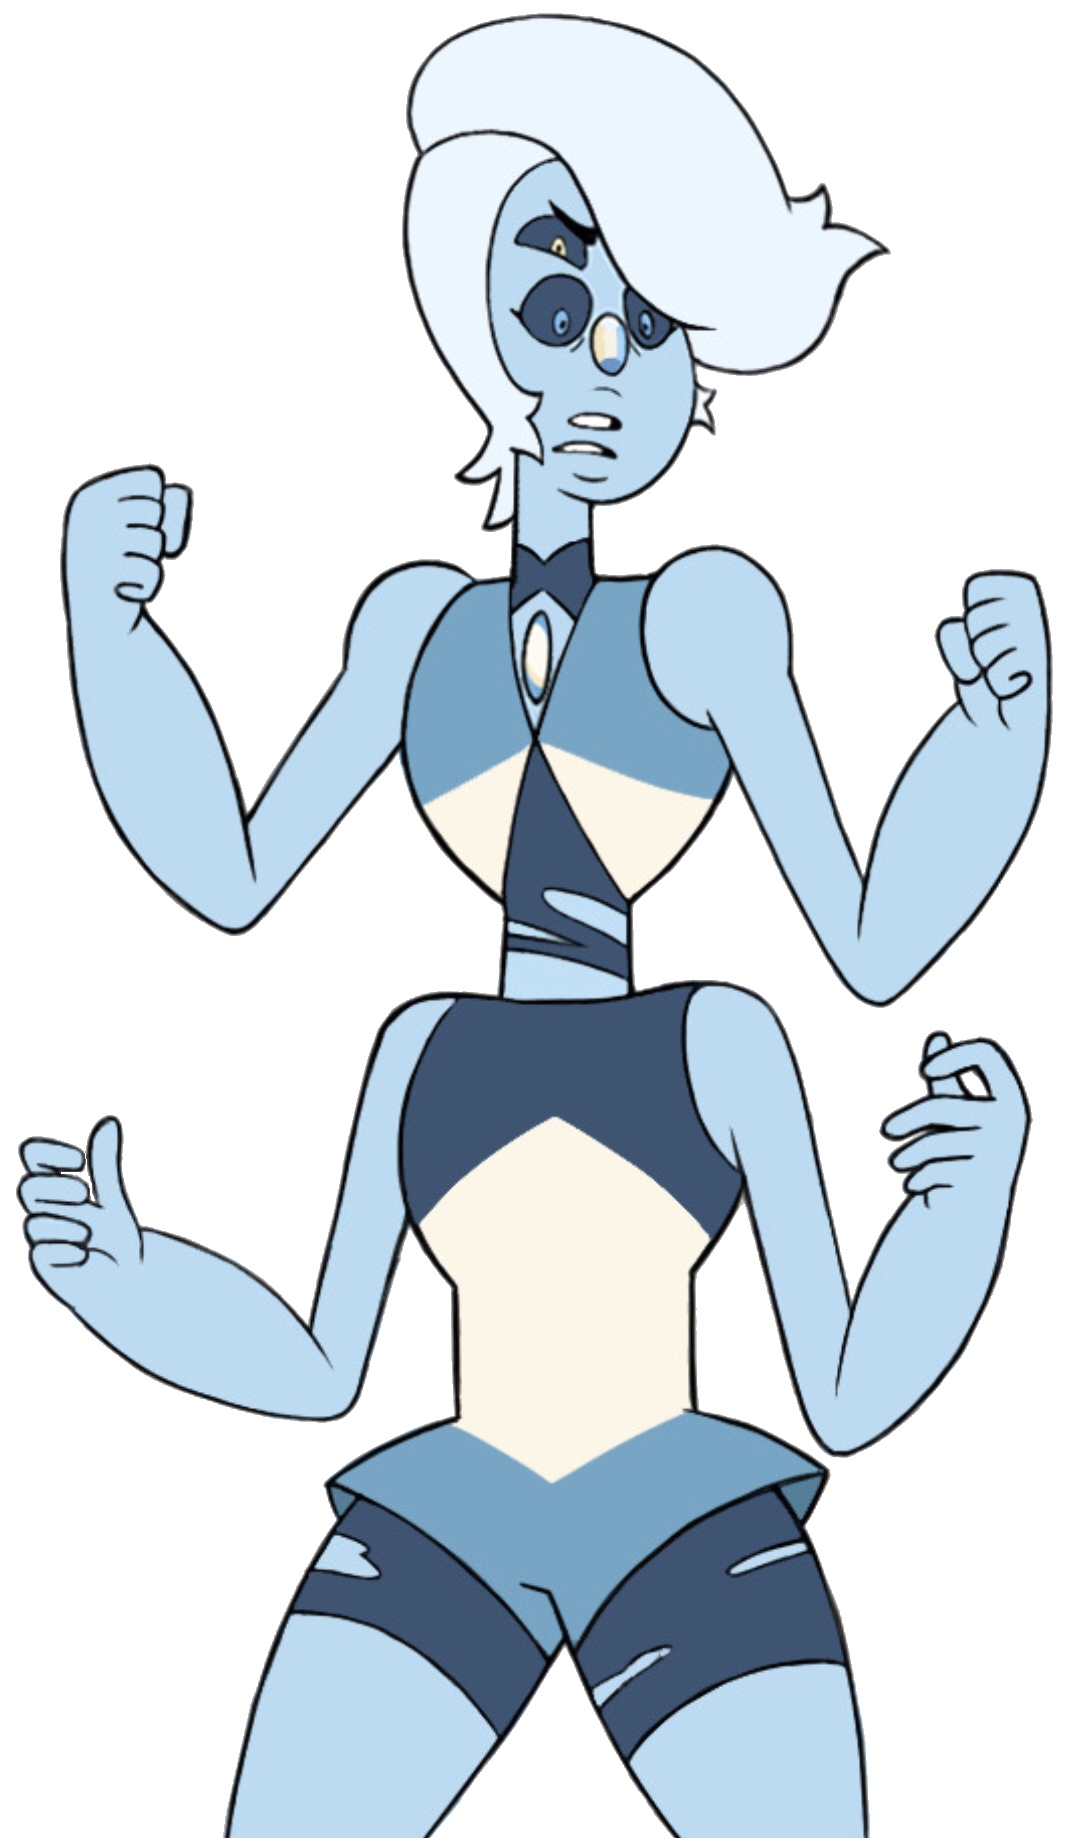 Moonstone (Snozz and Pawn)